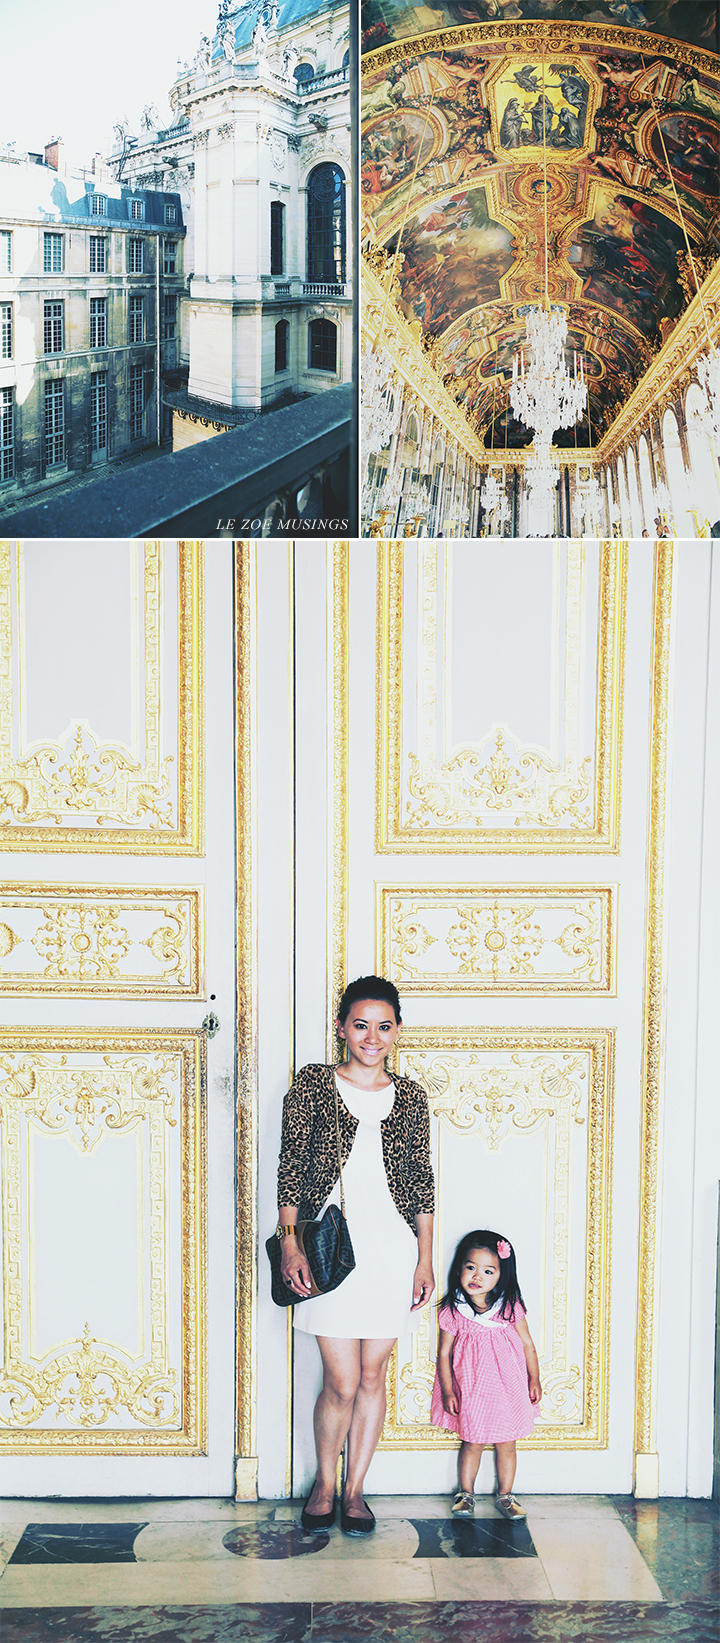 Palace of Versailles by Le Zoe Musings